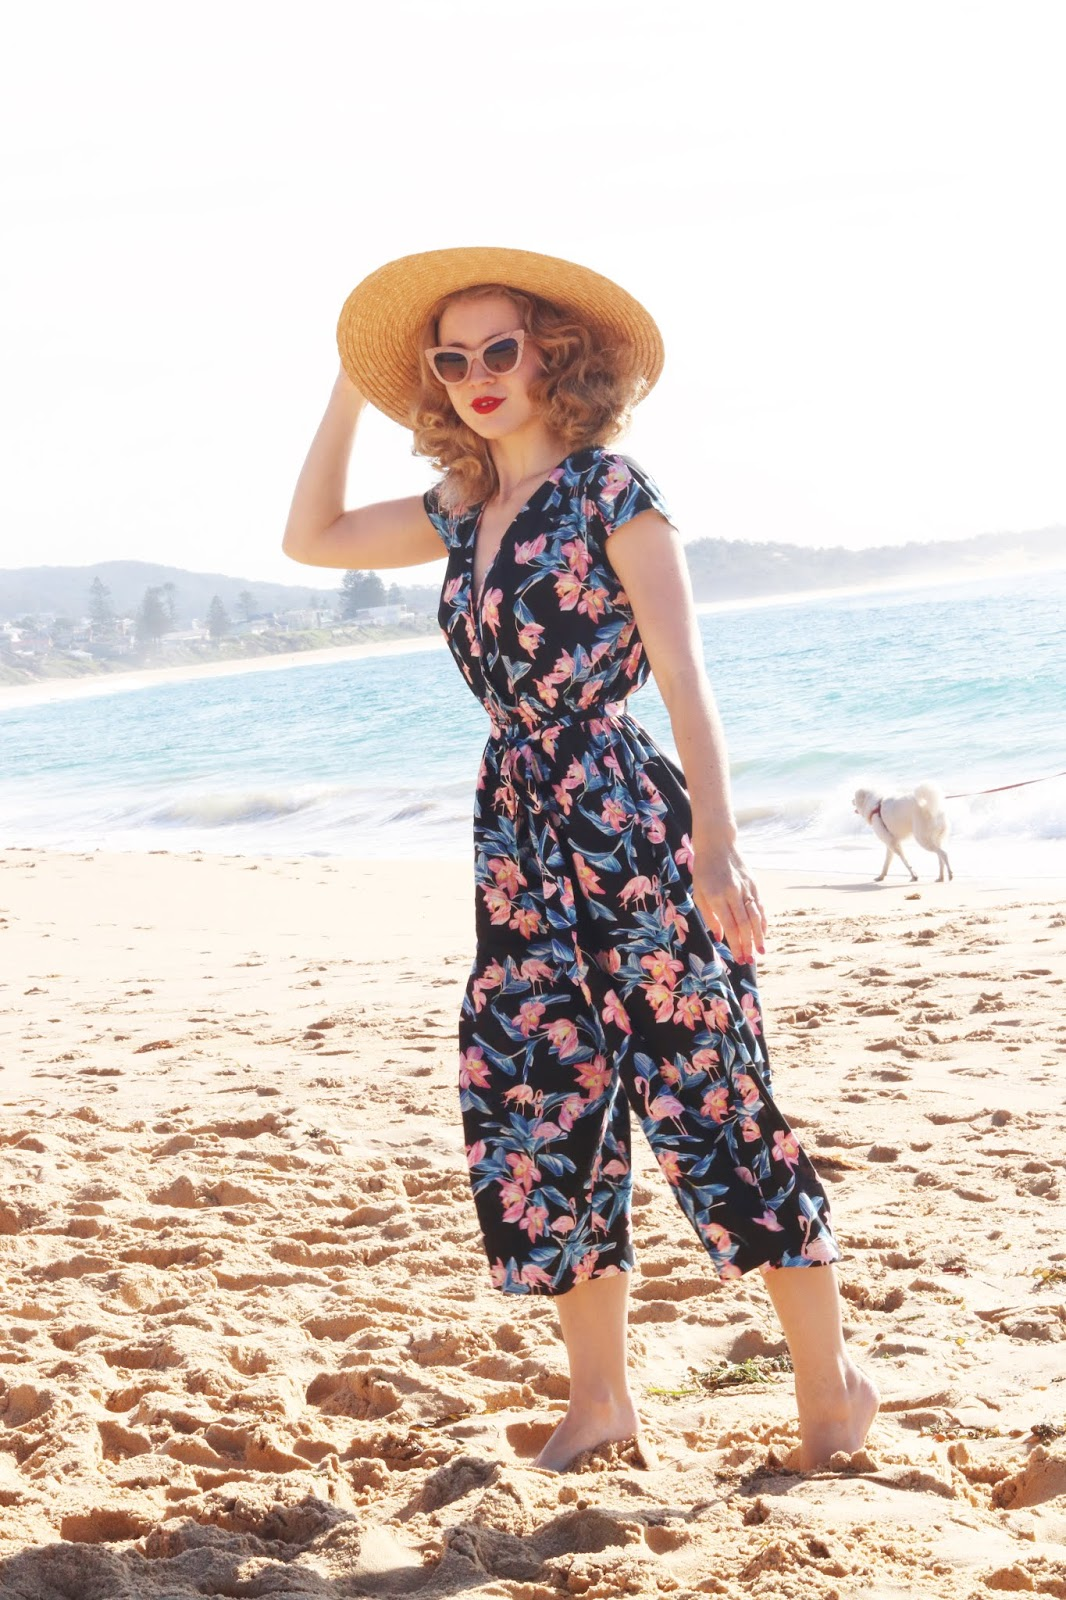 0e1d14a27bc Another new season piece from Hell Bunny's latest range, I am loving this  tropical print jumpsuit! Photos by Mum Outfit Details Florida Jumpsuit -  c/o Hell ...